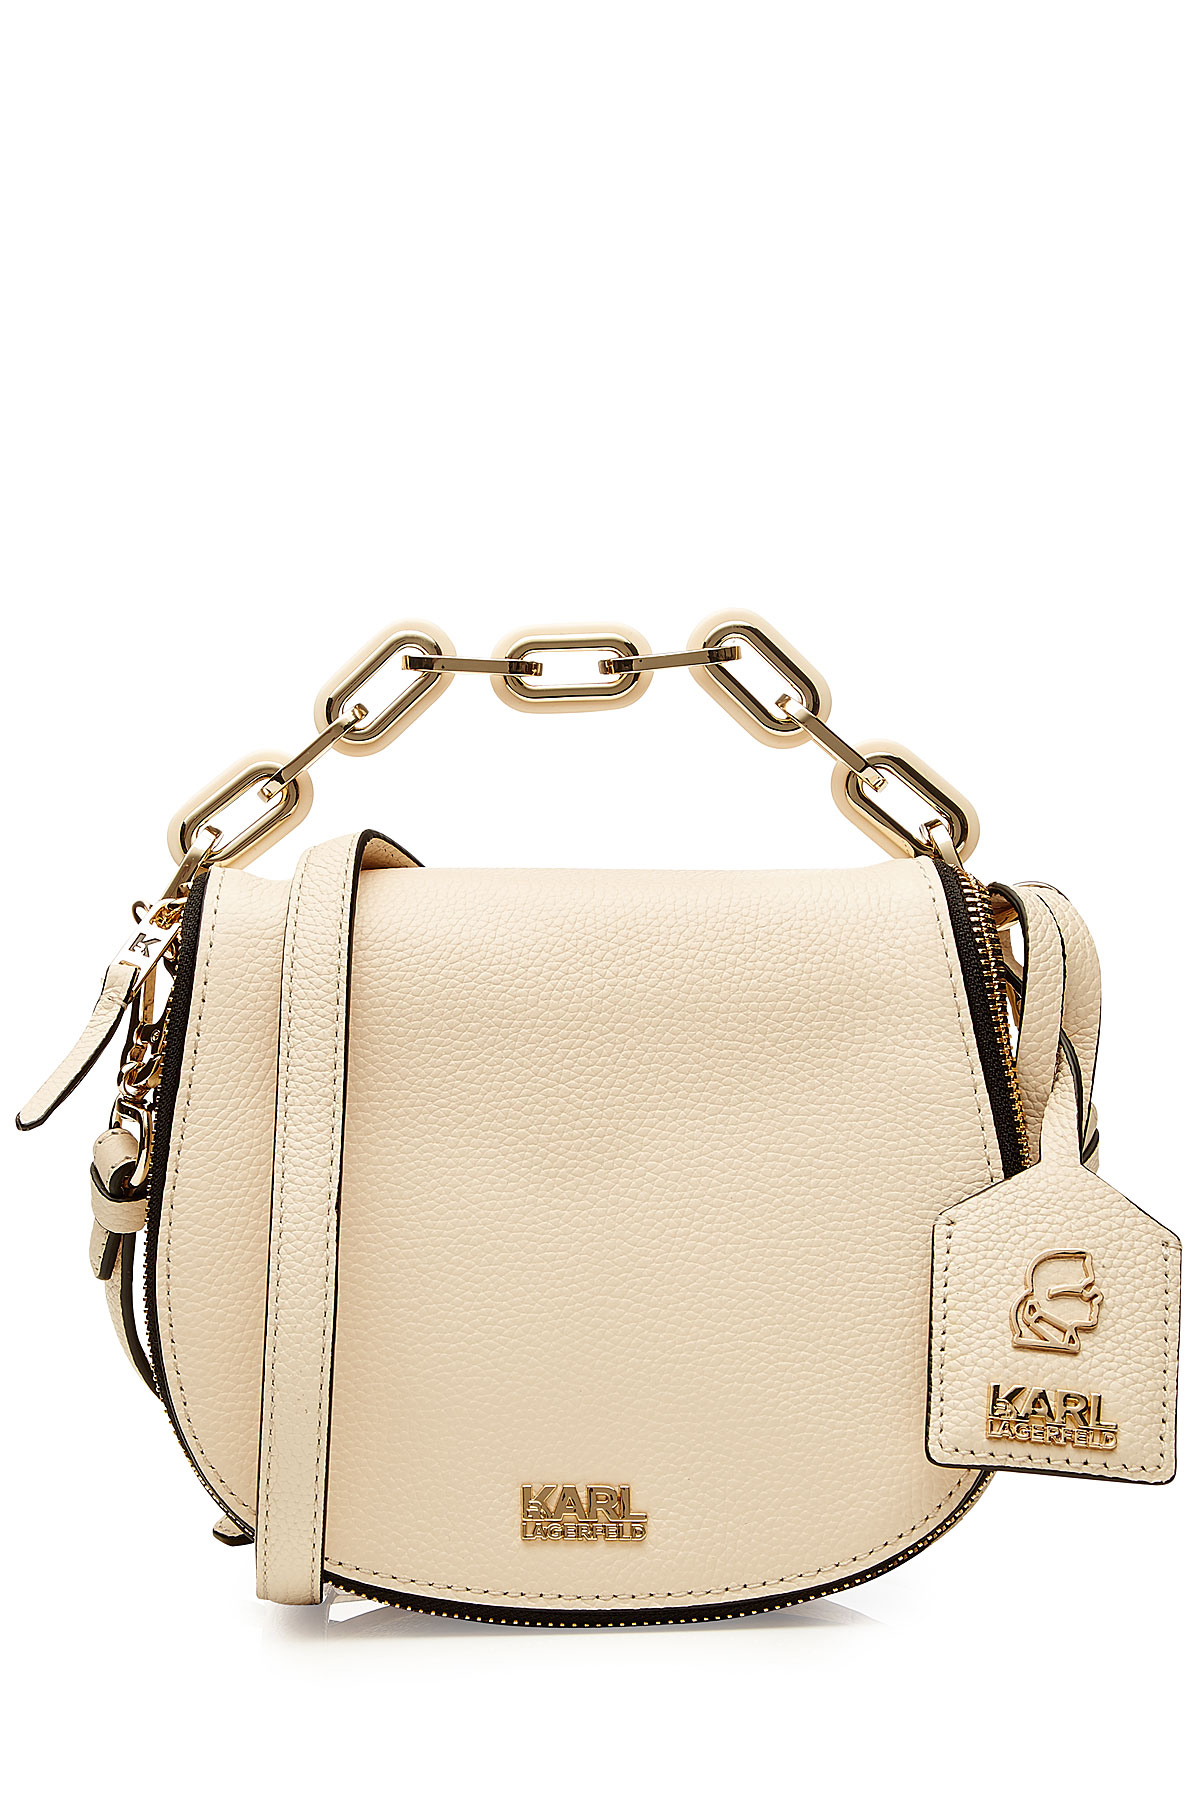 3274add838f Karl Lagerfeld Grainy Leather Small Satchel Bag - Beige in Natural ...